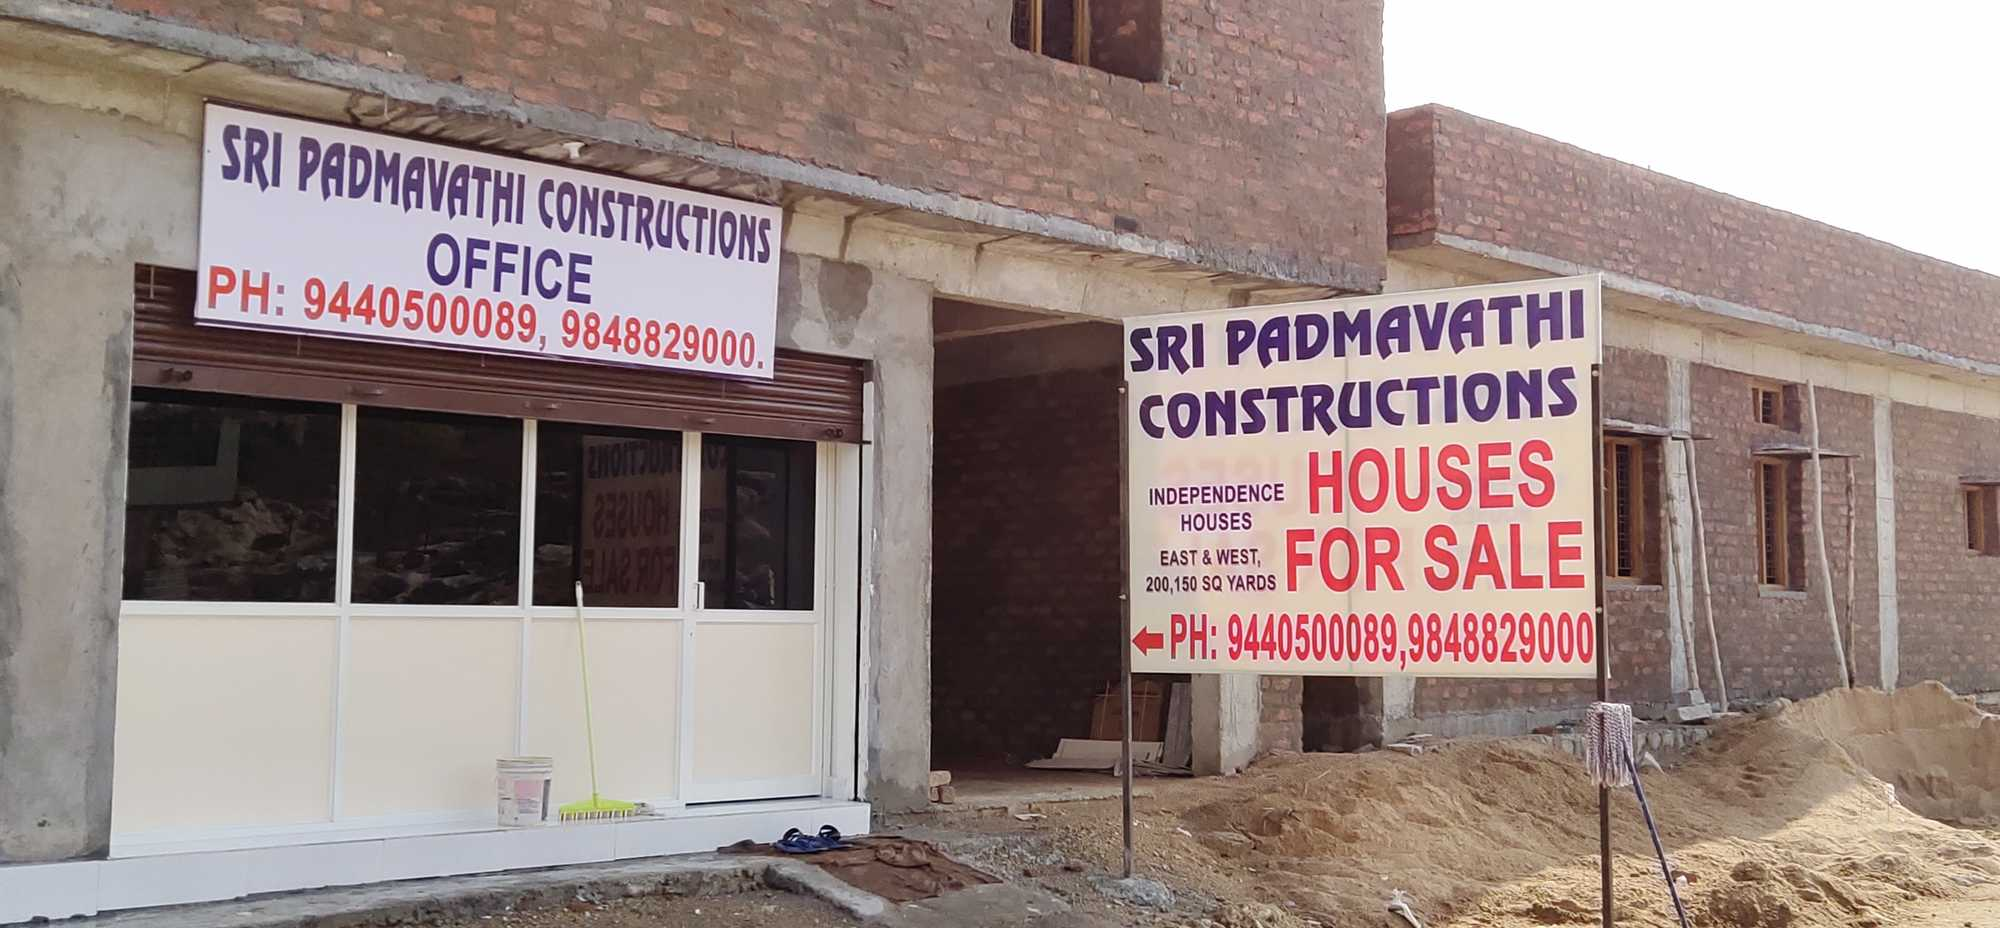 Top 100 Construction Companies in Hyderabad - Best Construction